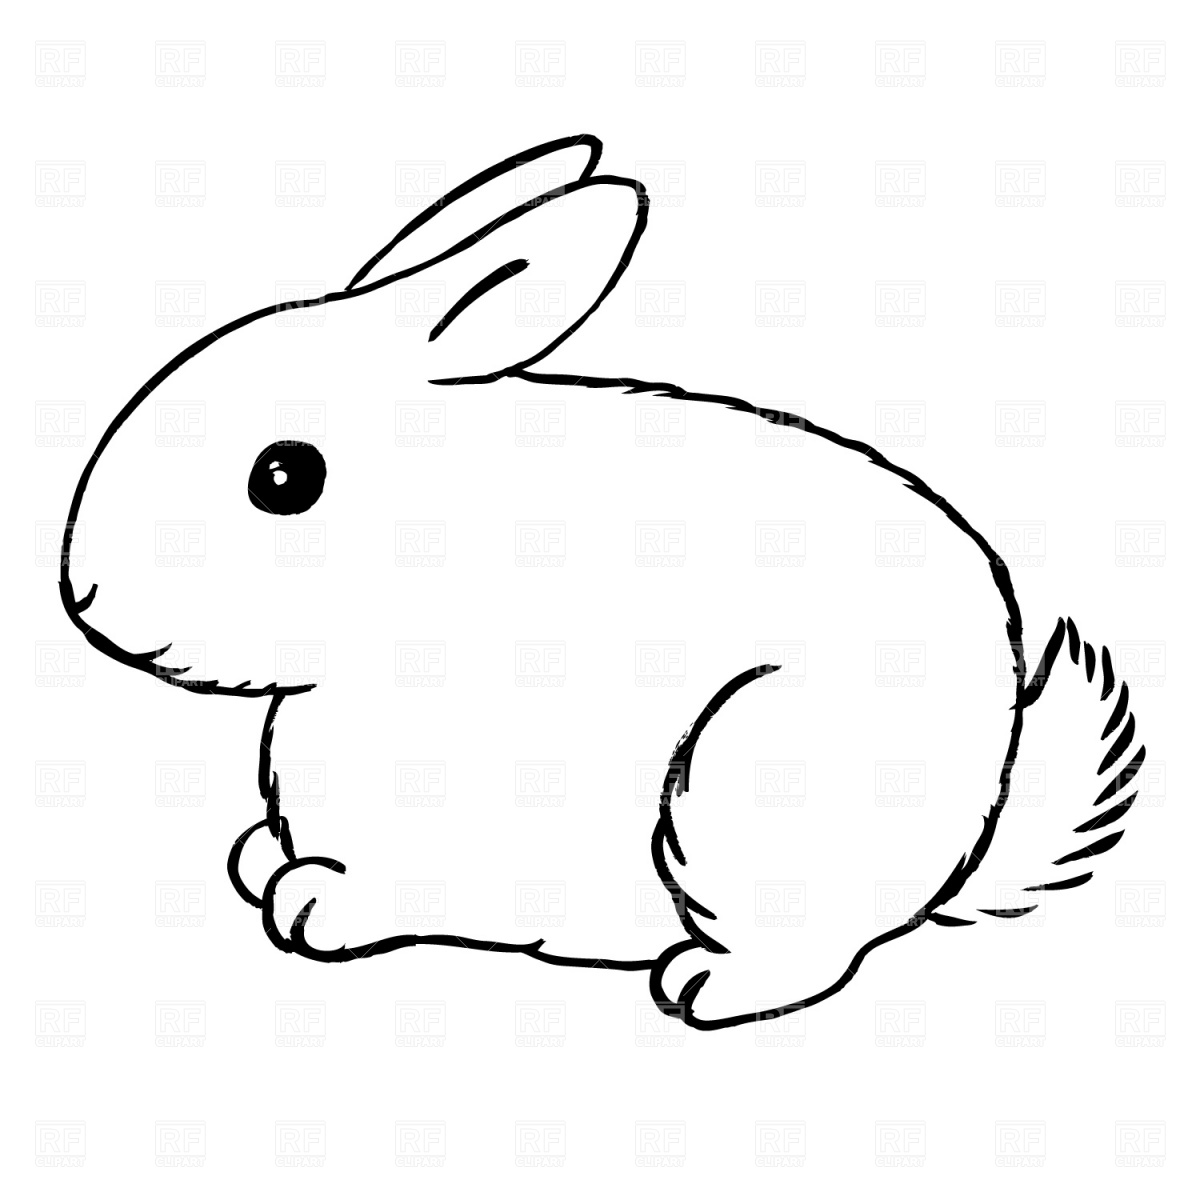 Bunny Silhouette Outline At Getdrawings Free For Personal Use